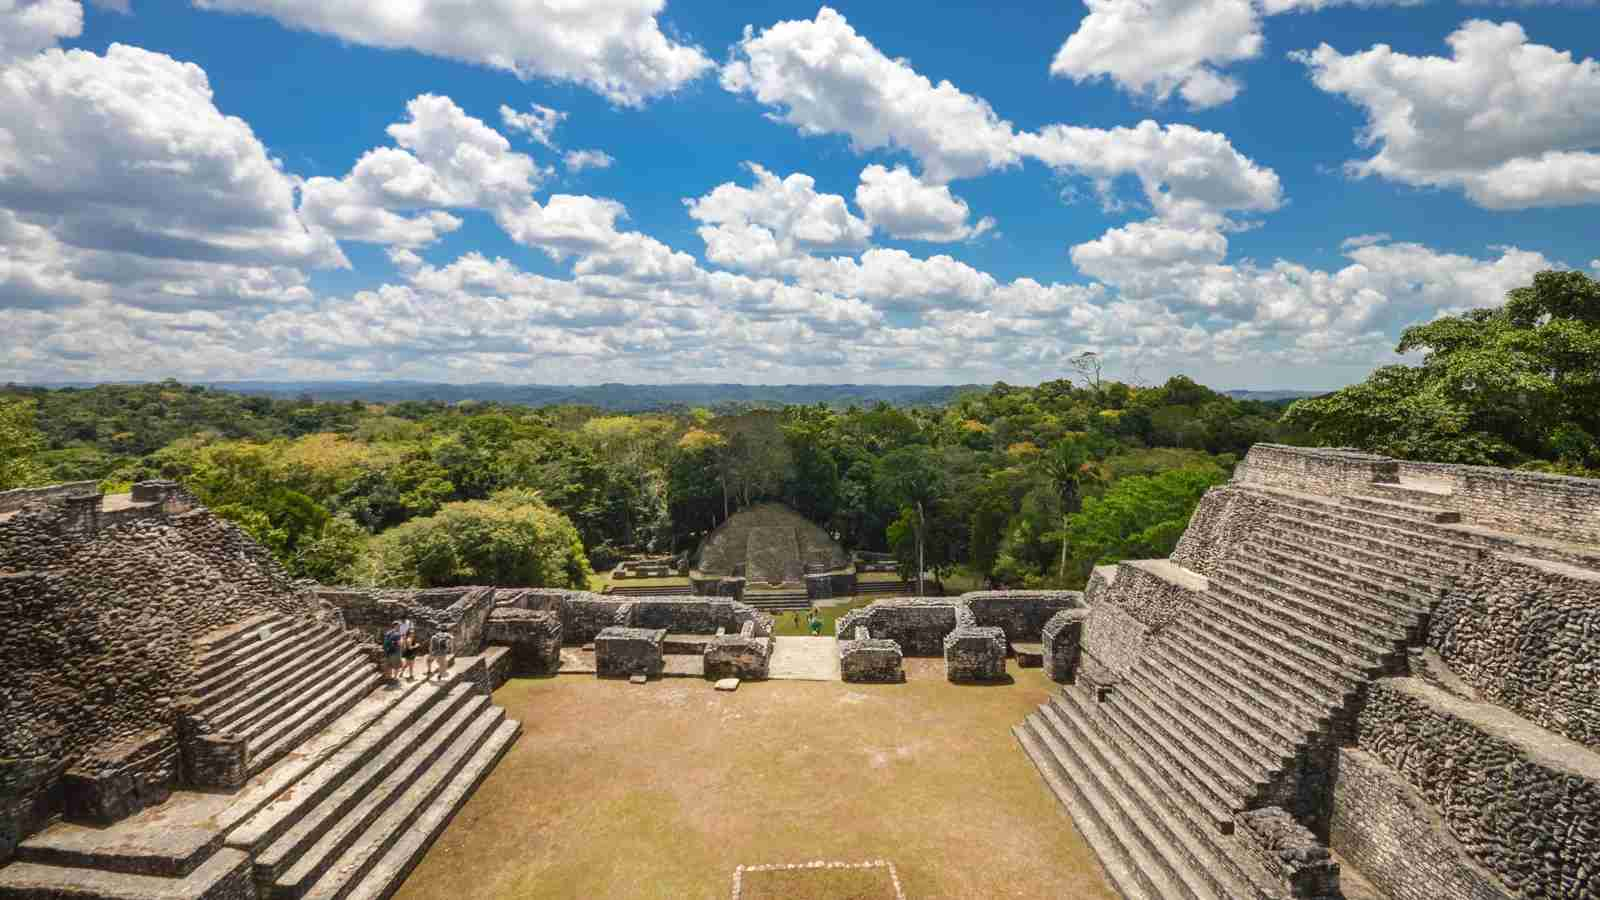 A view of Caracol in the Cayo District, Belize atop the Caana Pyramid. (Photo via Shutterstock)